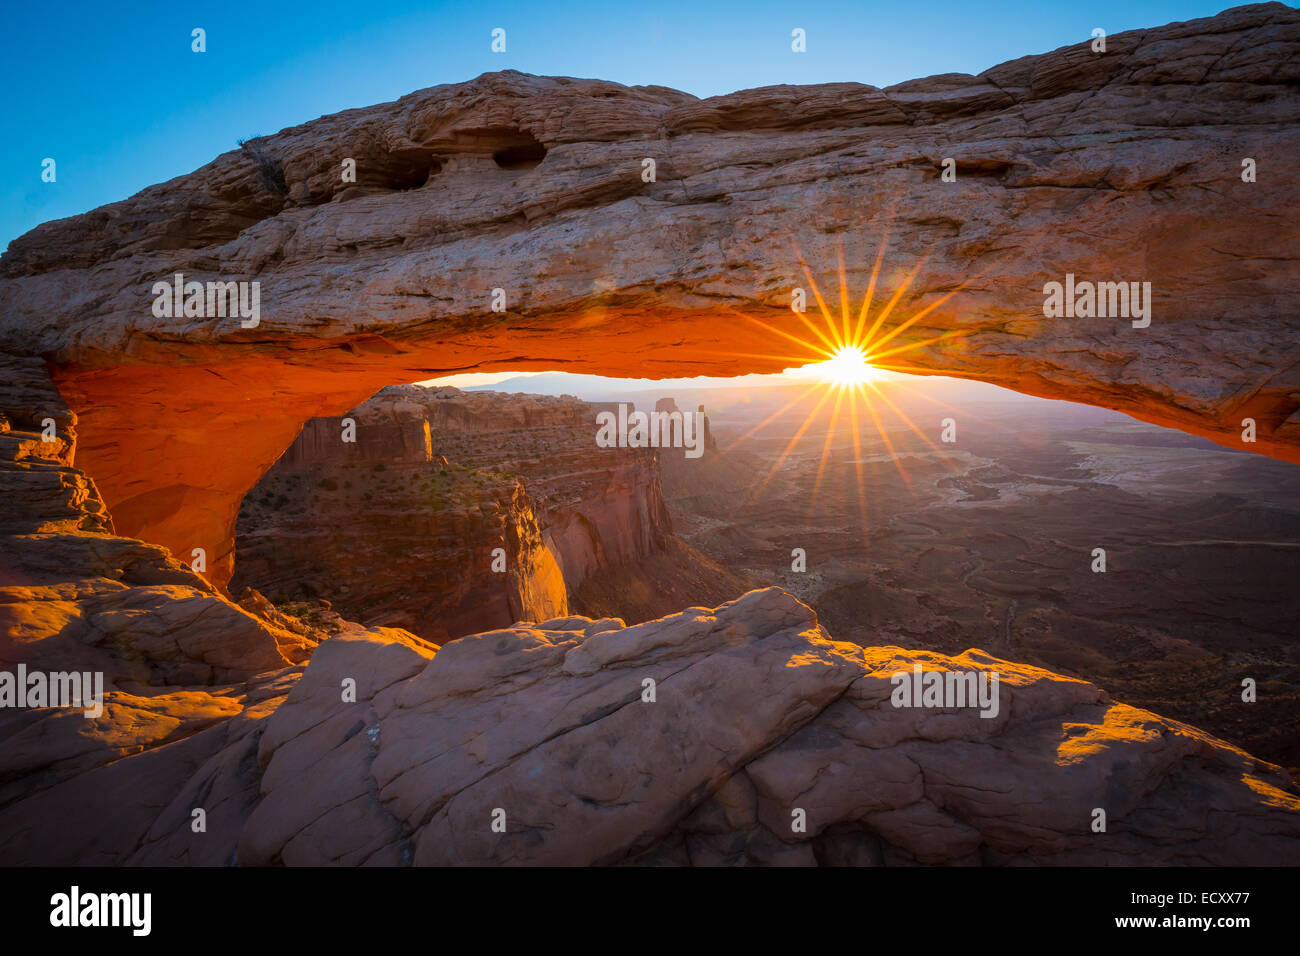 Mesa Arch at Sunrise Island in the Sky, Distrito de Parque Nacional Canyonlands, en Utah Imagen De Stock